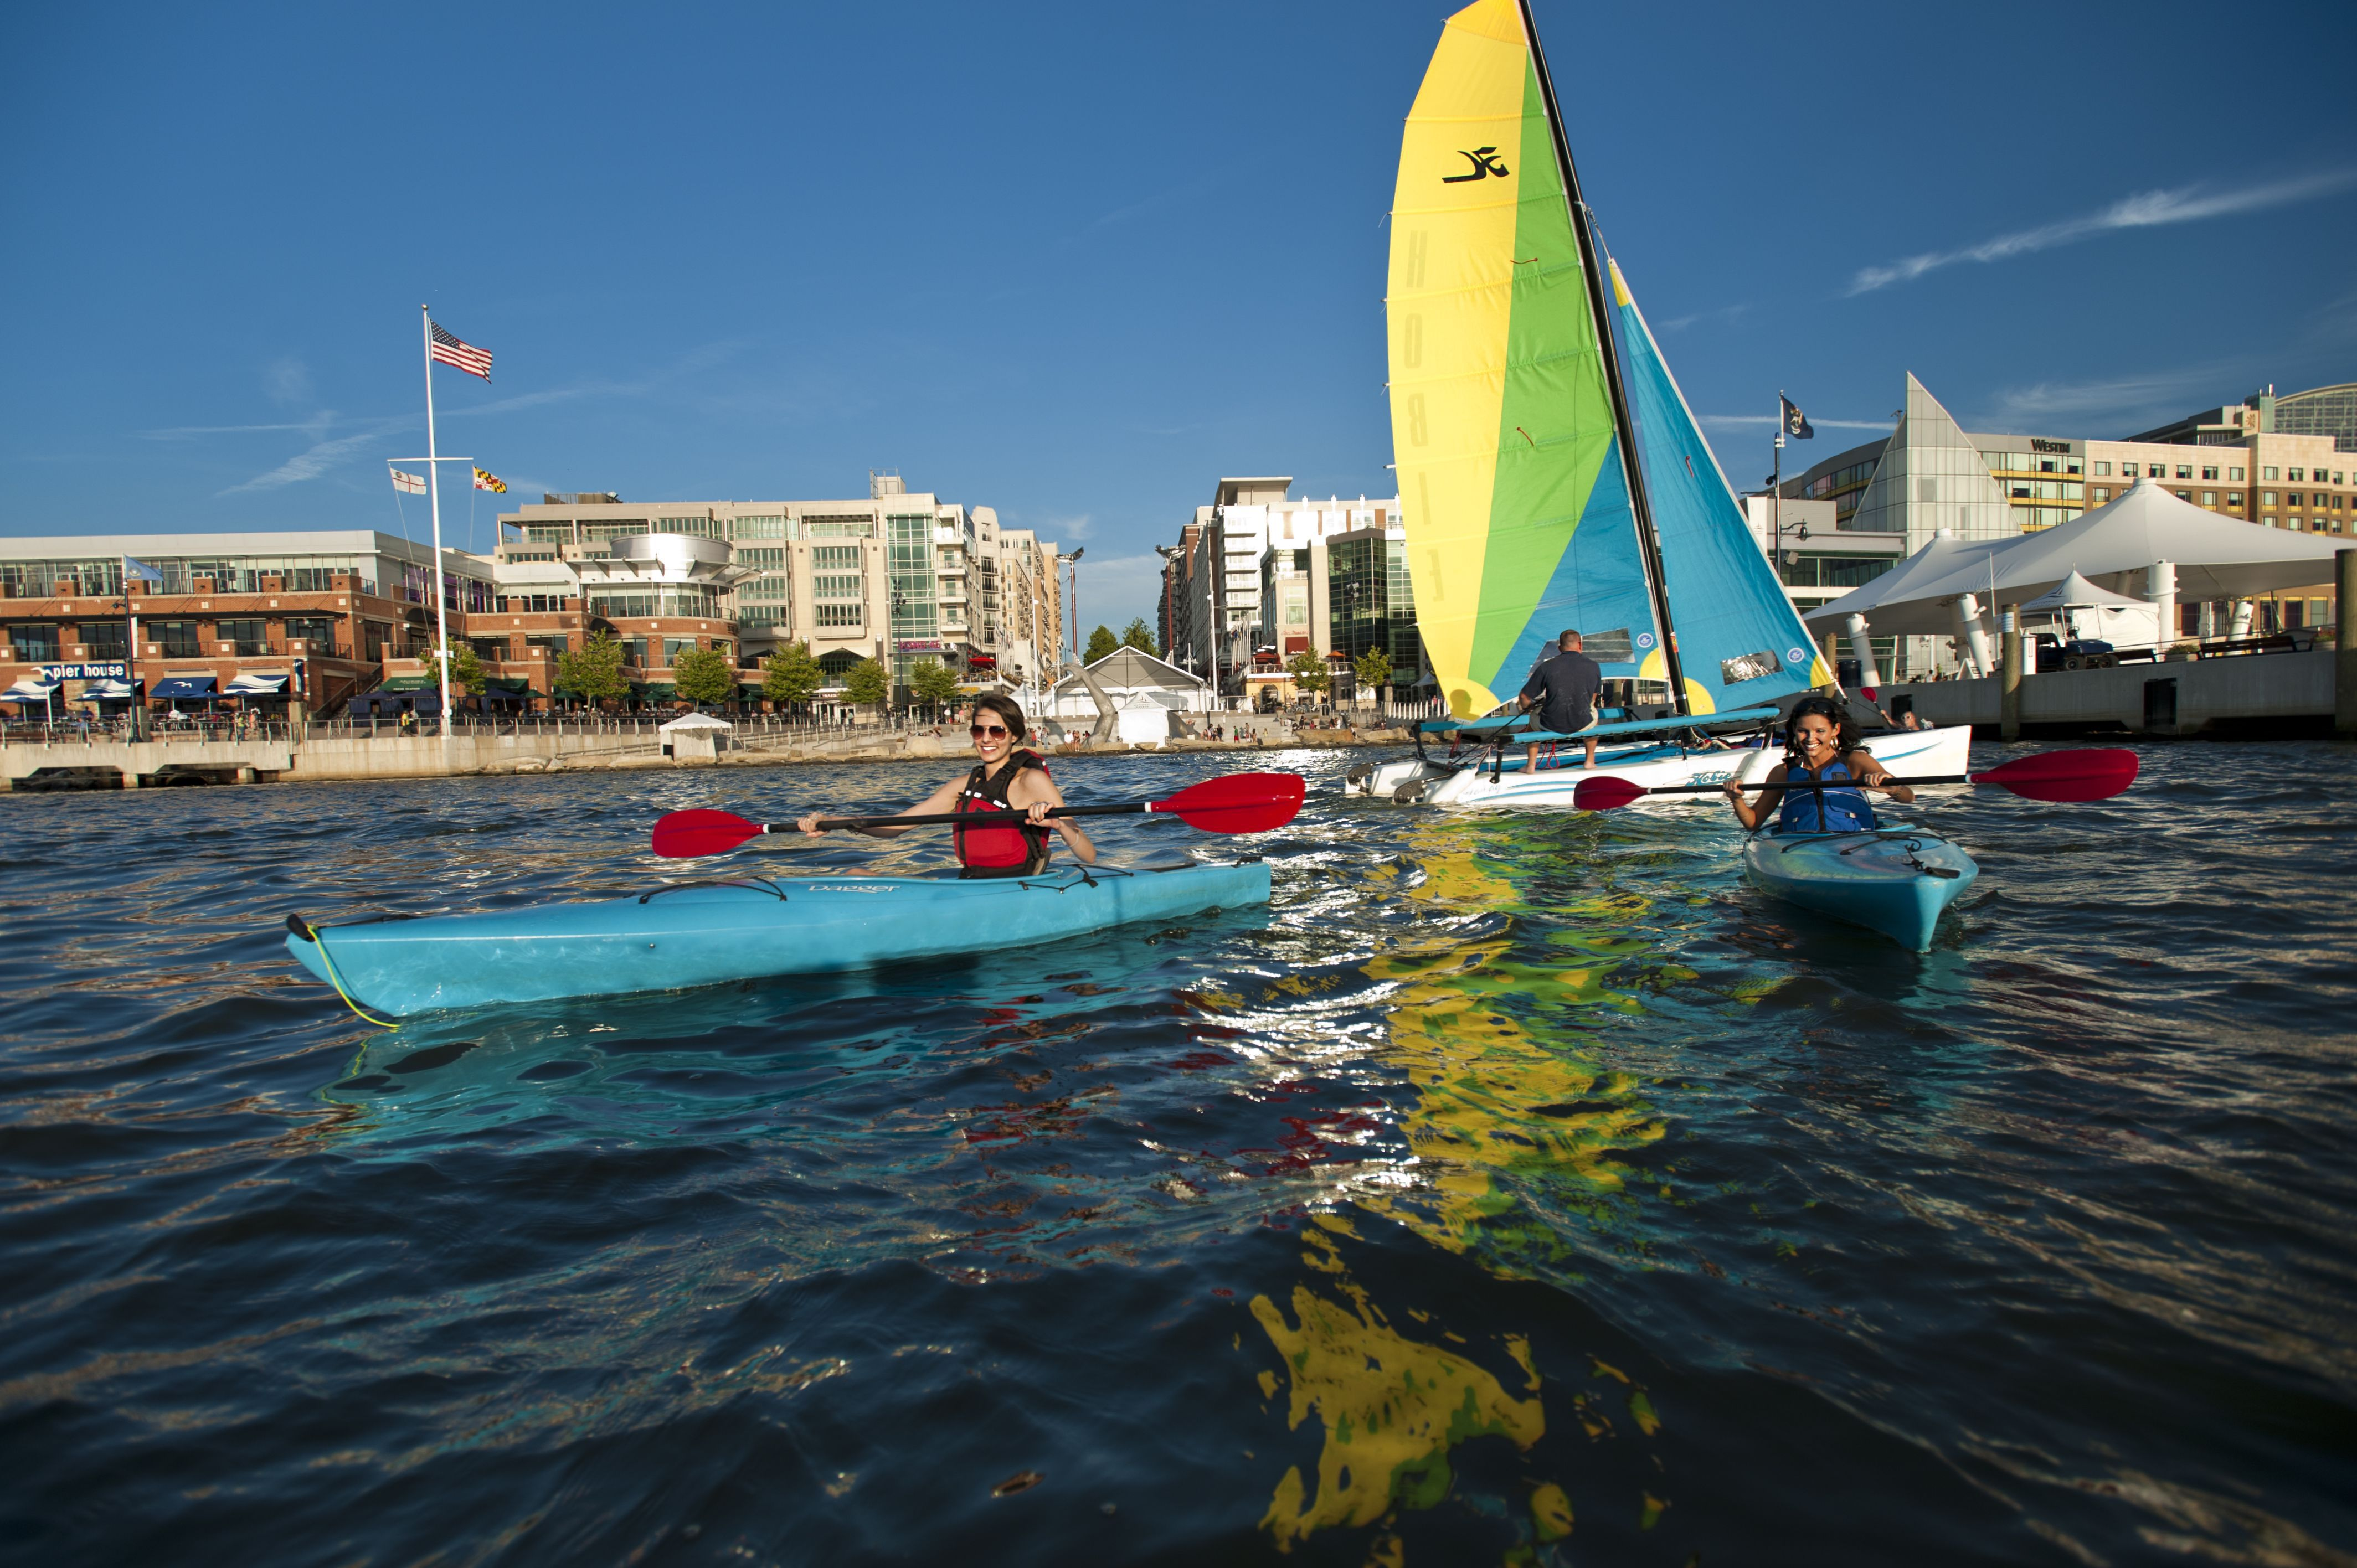 Boating on the National Harbor